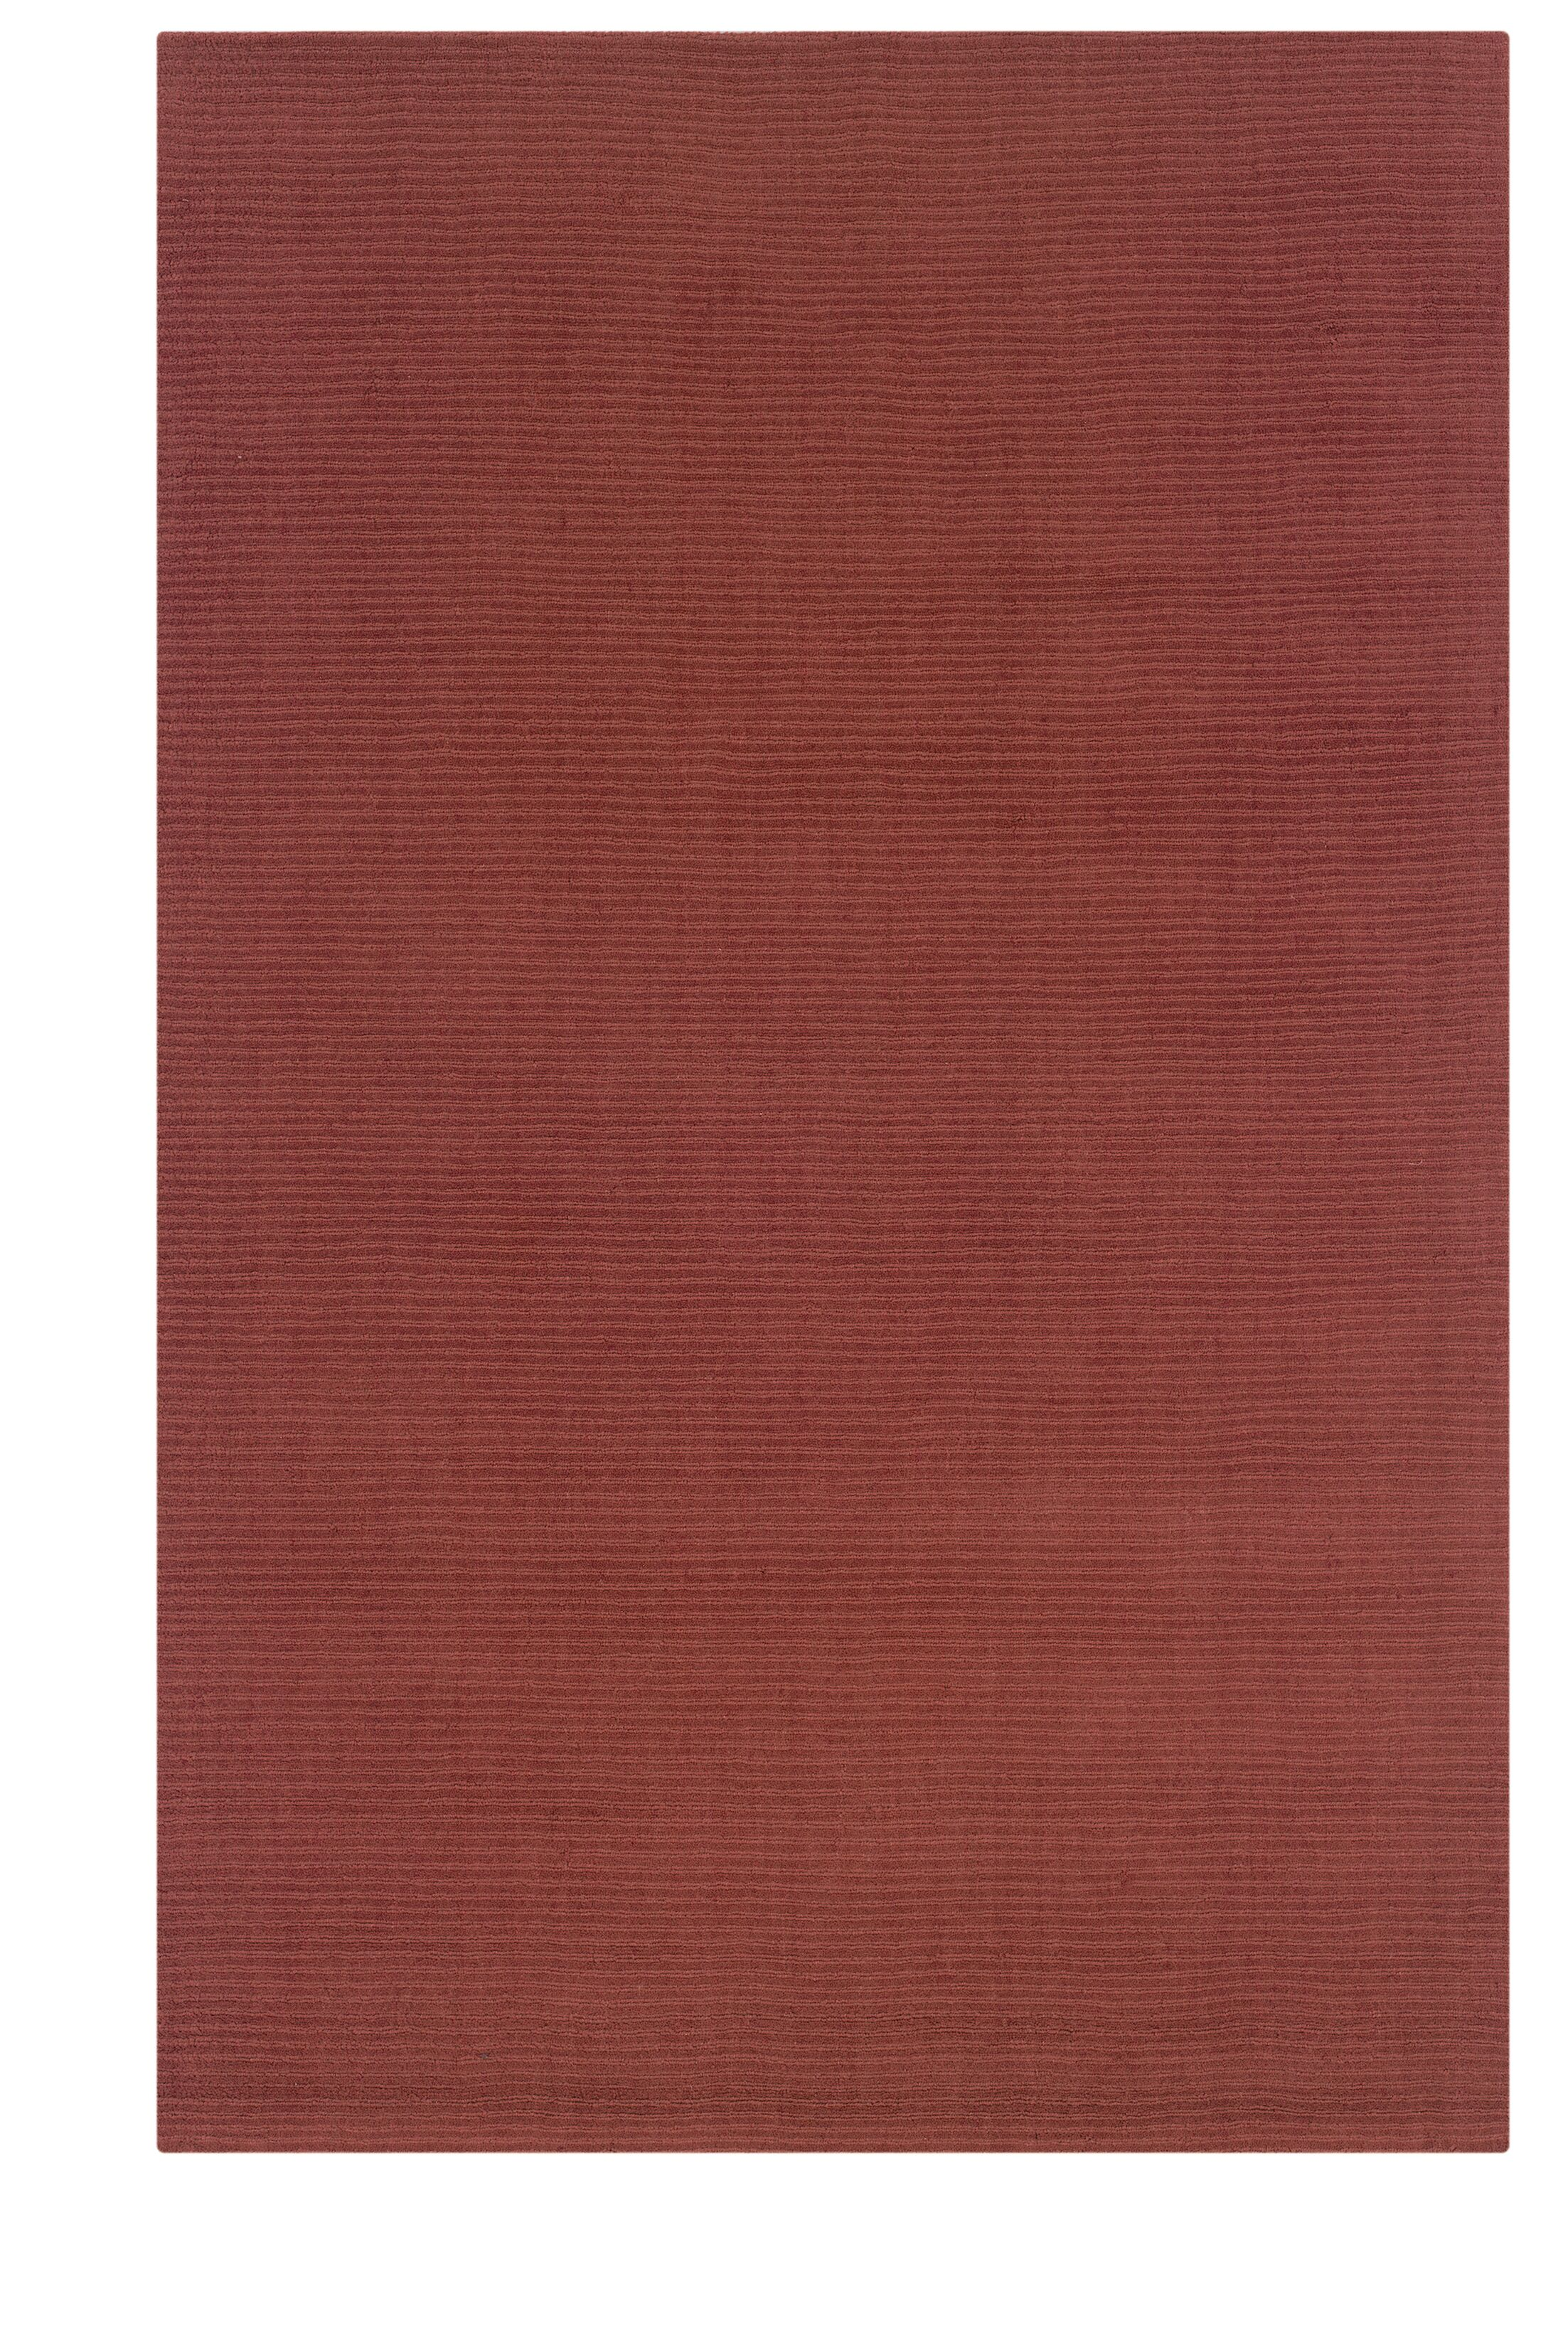 Hand-Woven Red Area Rug Rug Size: Rectangle 8' x 10'1